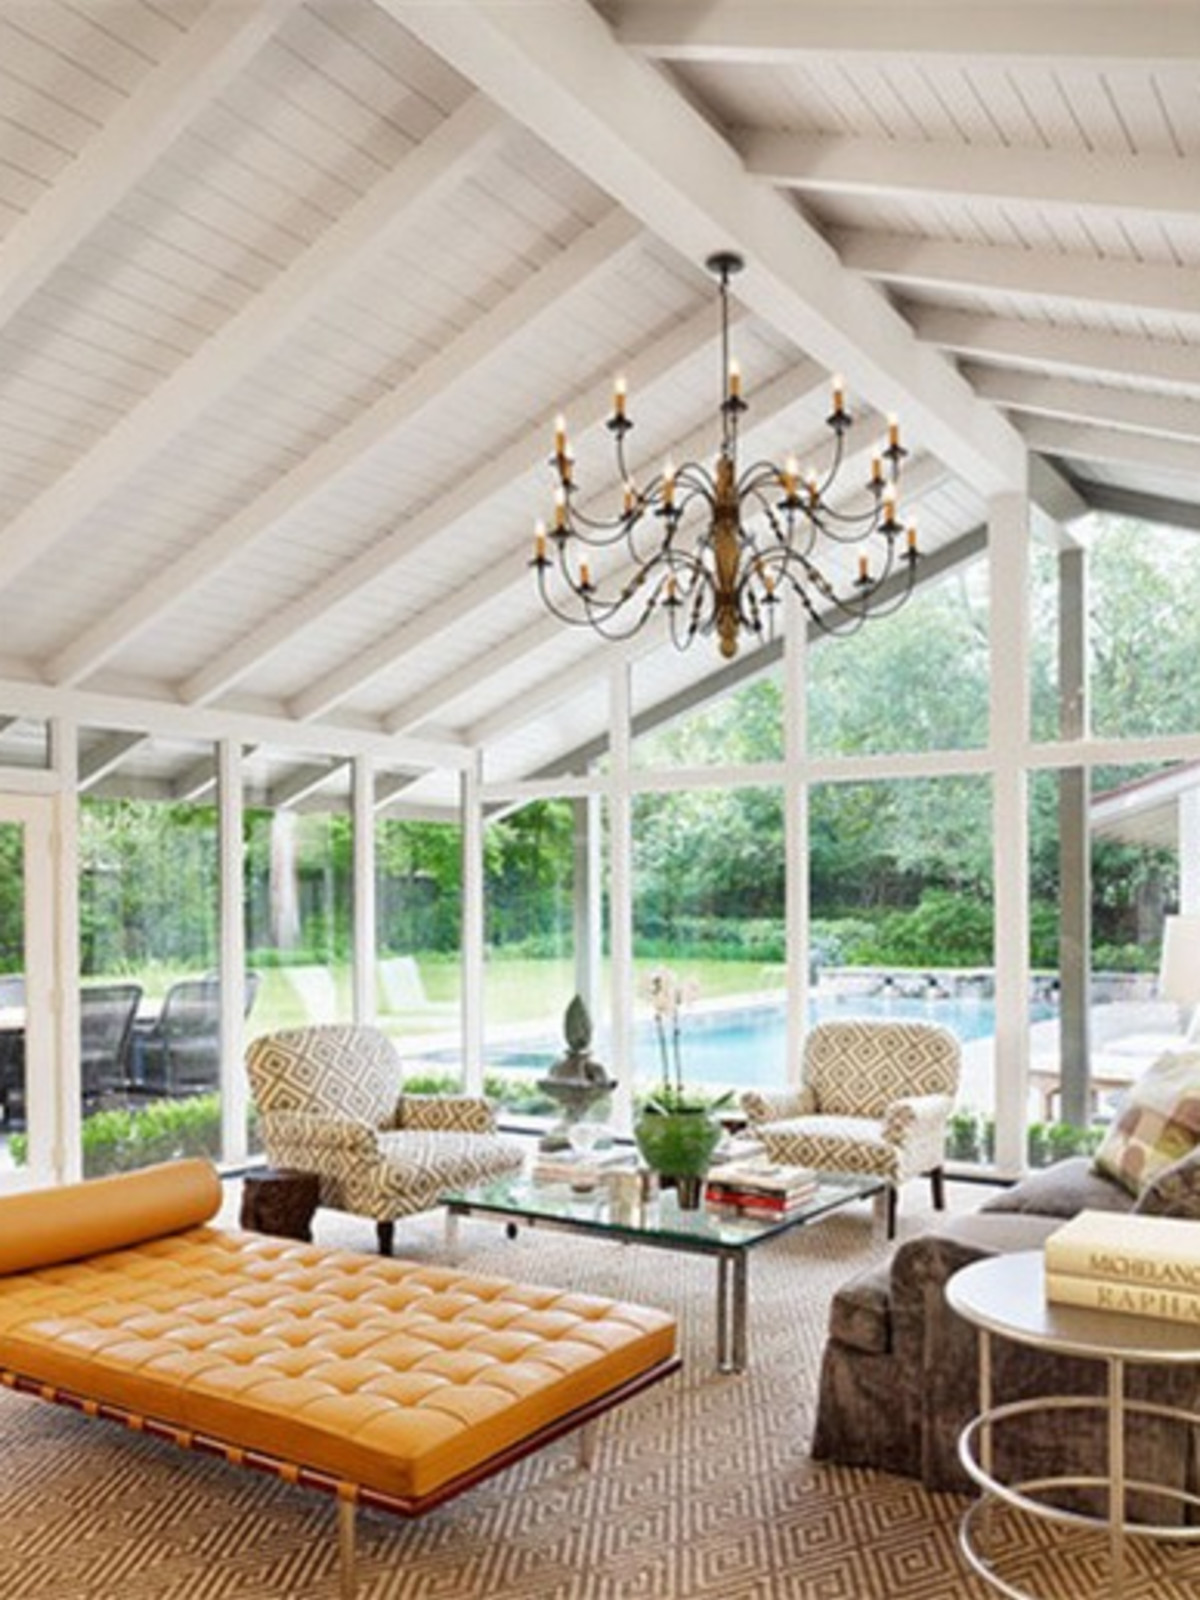 Porch.com Kyle Dillon Architecture living room